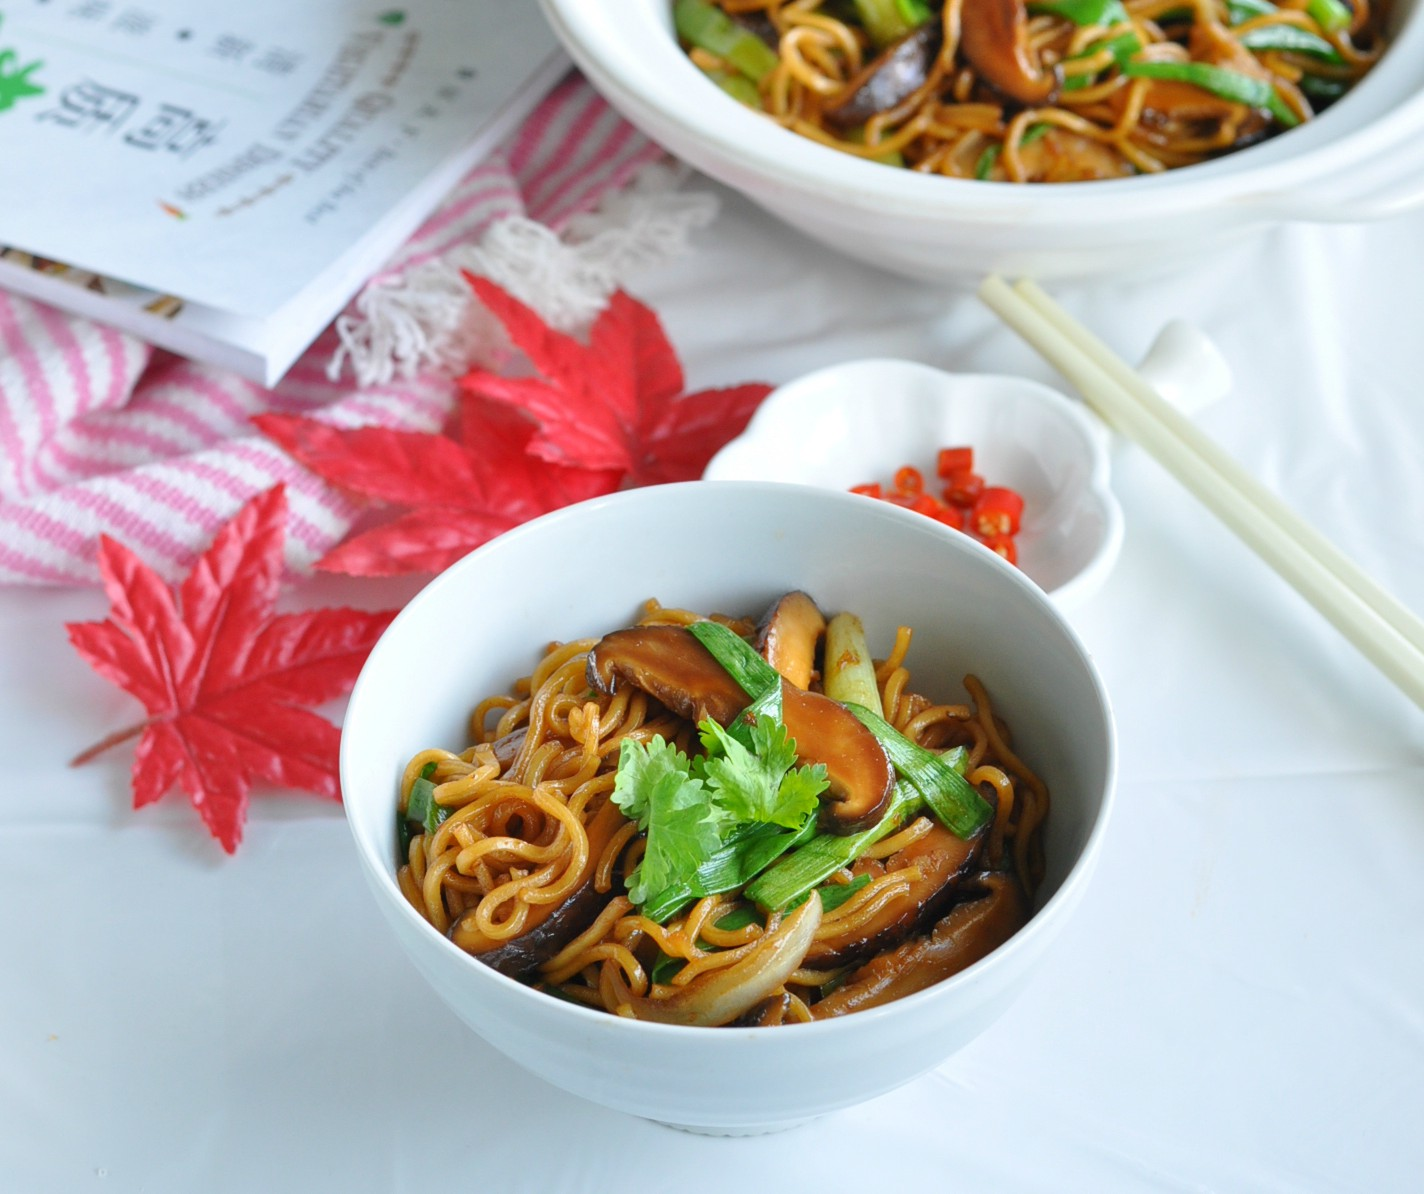 Braised E Fu Noodles With Mushrooms 干烧伊面 Eat What Tonight